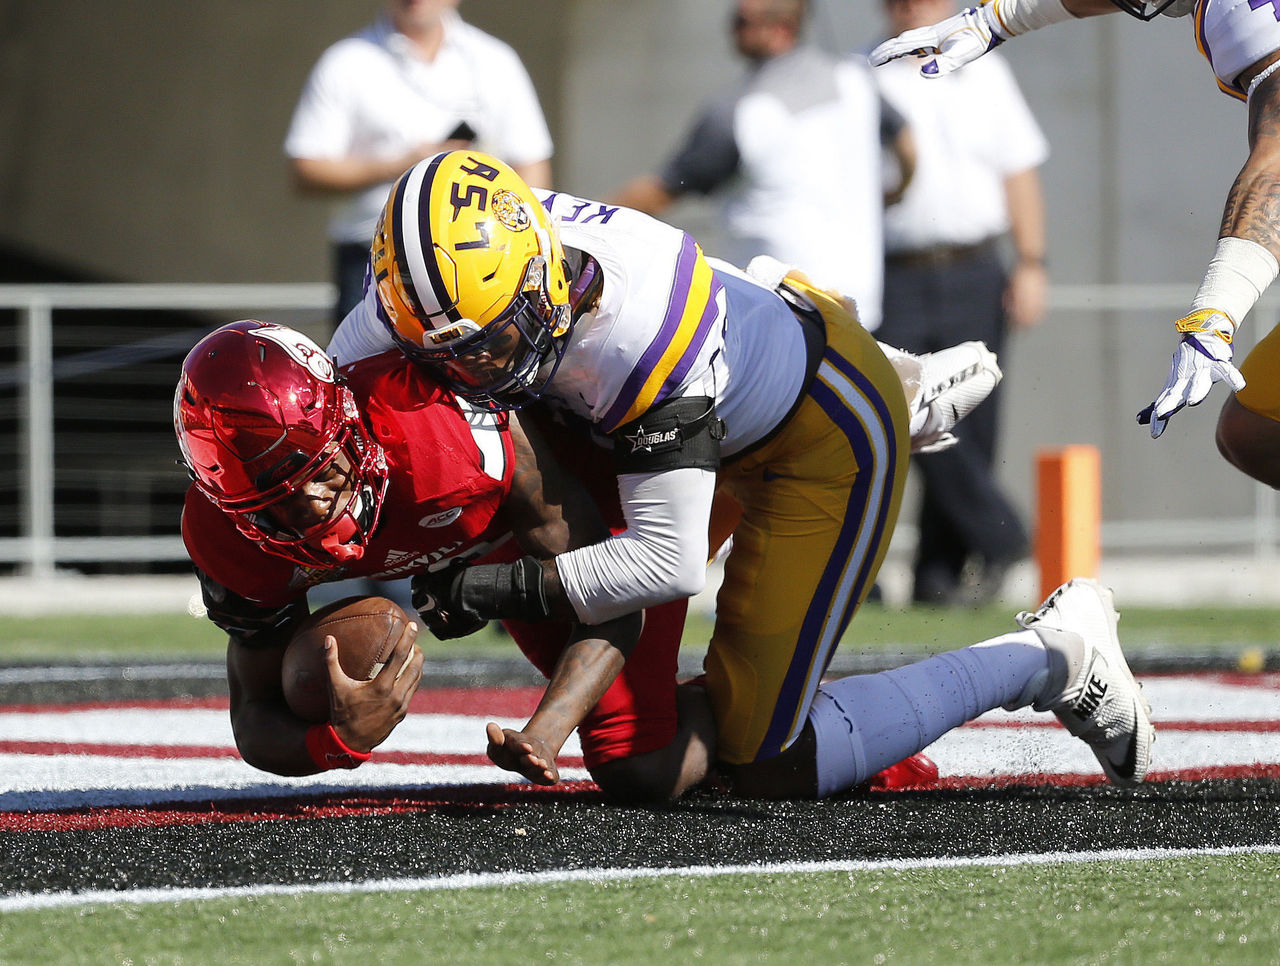 Cropped 2016 12 31t183229z 885640336 nocid rtrmadp 3 ncaa football citrus bowl louisiana state vs louisville